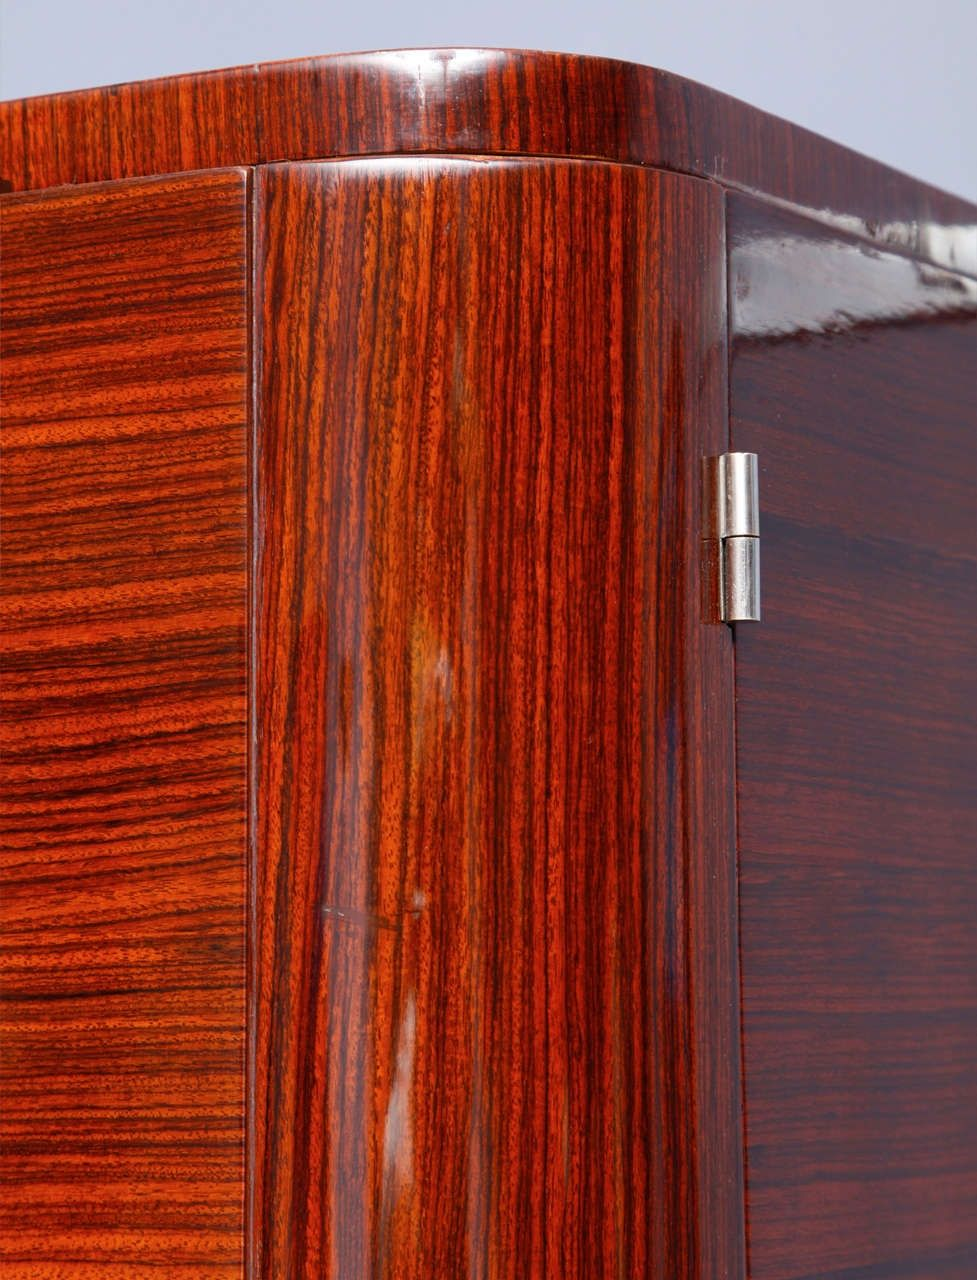 Rosewood veneered art deco wardrobe  Indian rosewood  lustrous hand made  French polish. Rosewood veneered art deco wardrobe  Indian rosewood  lustrous